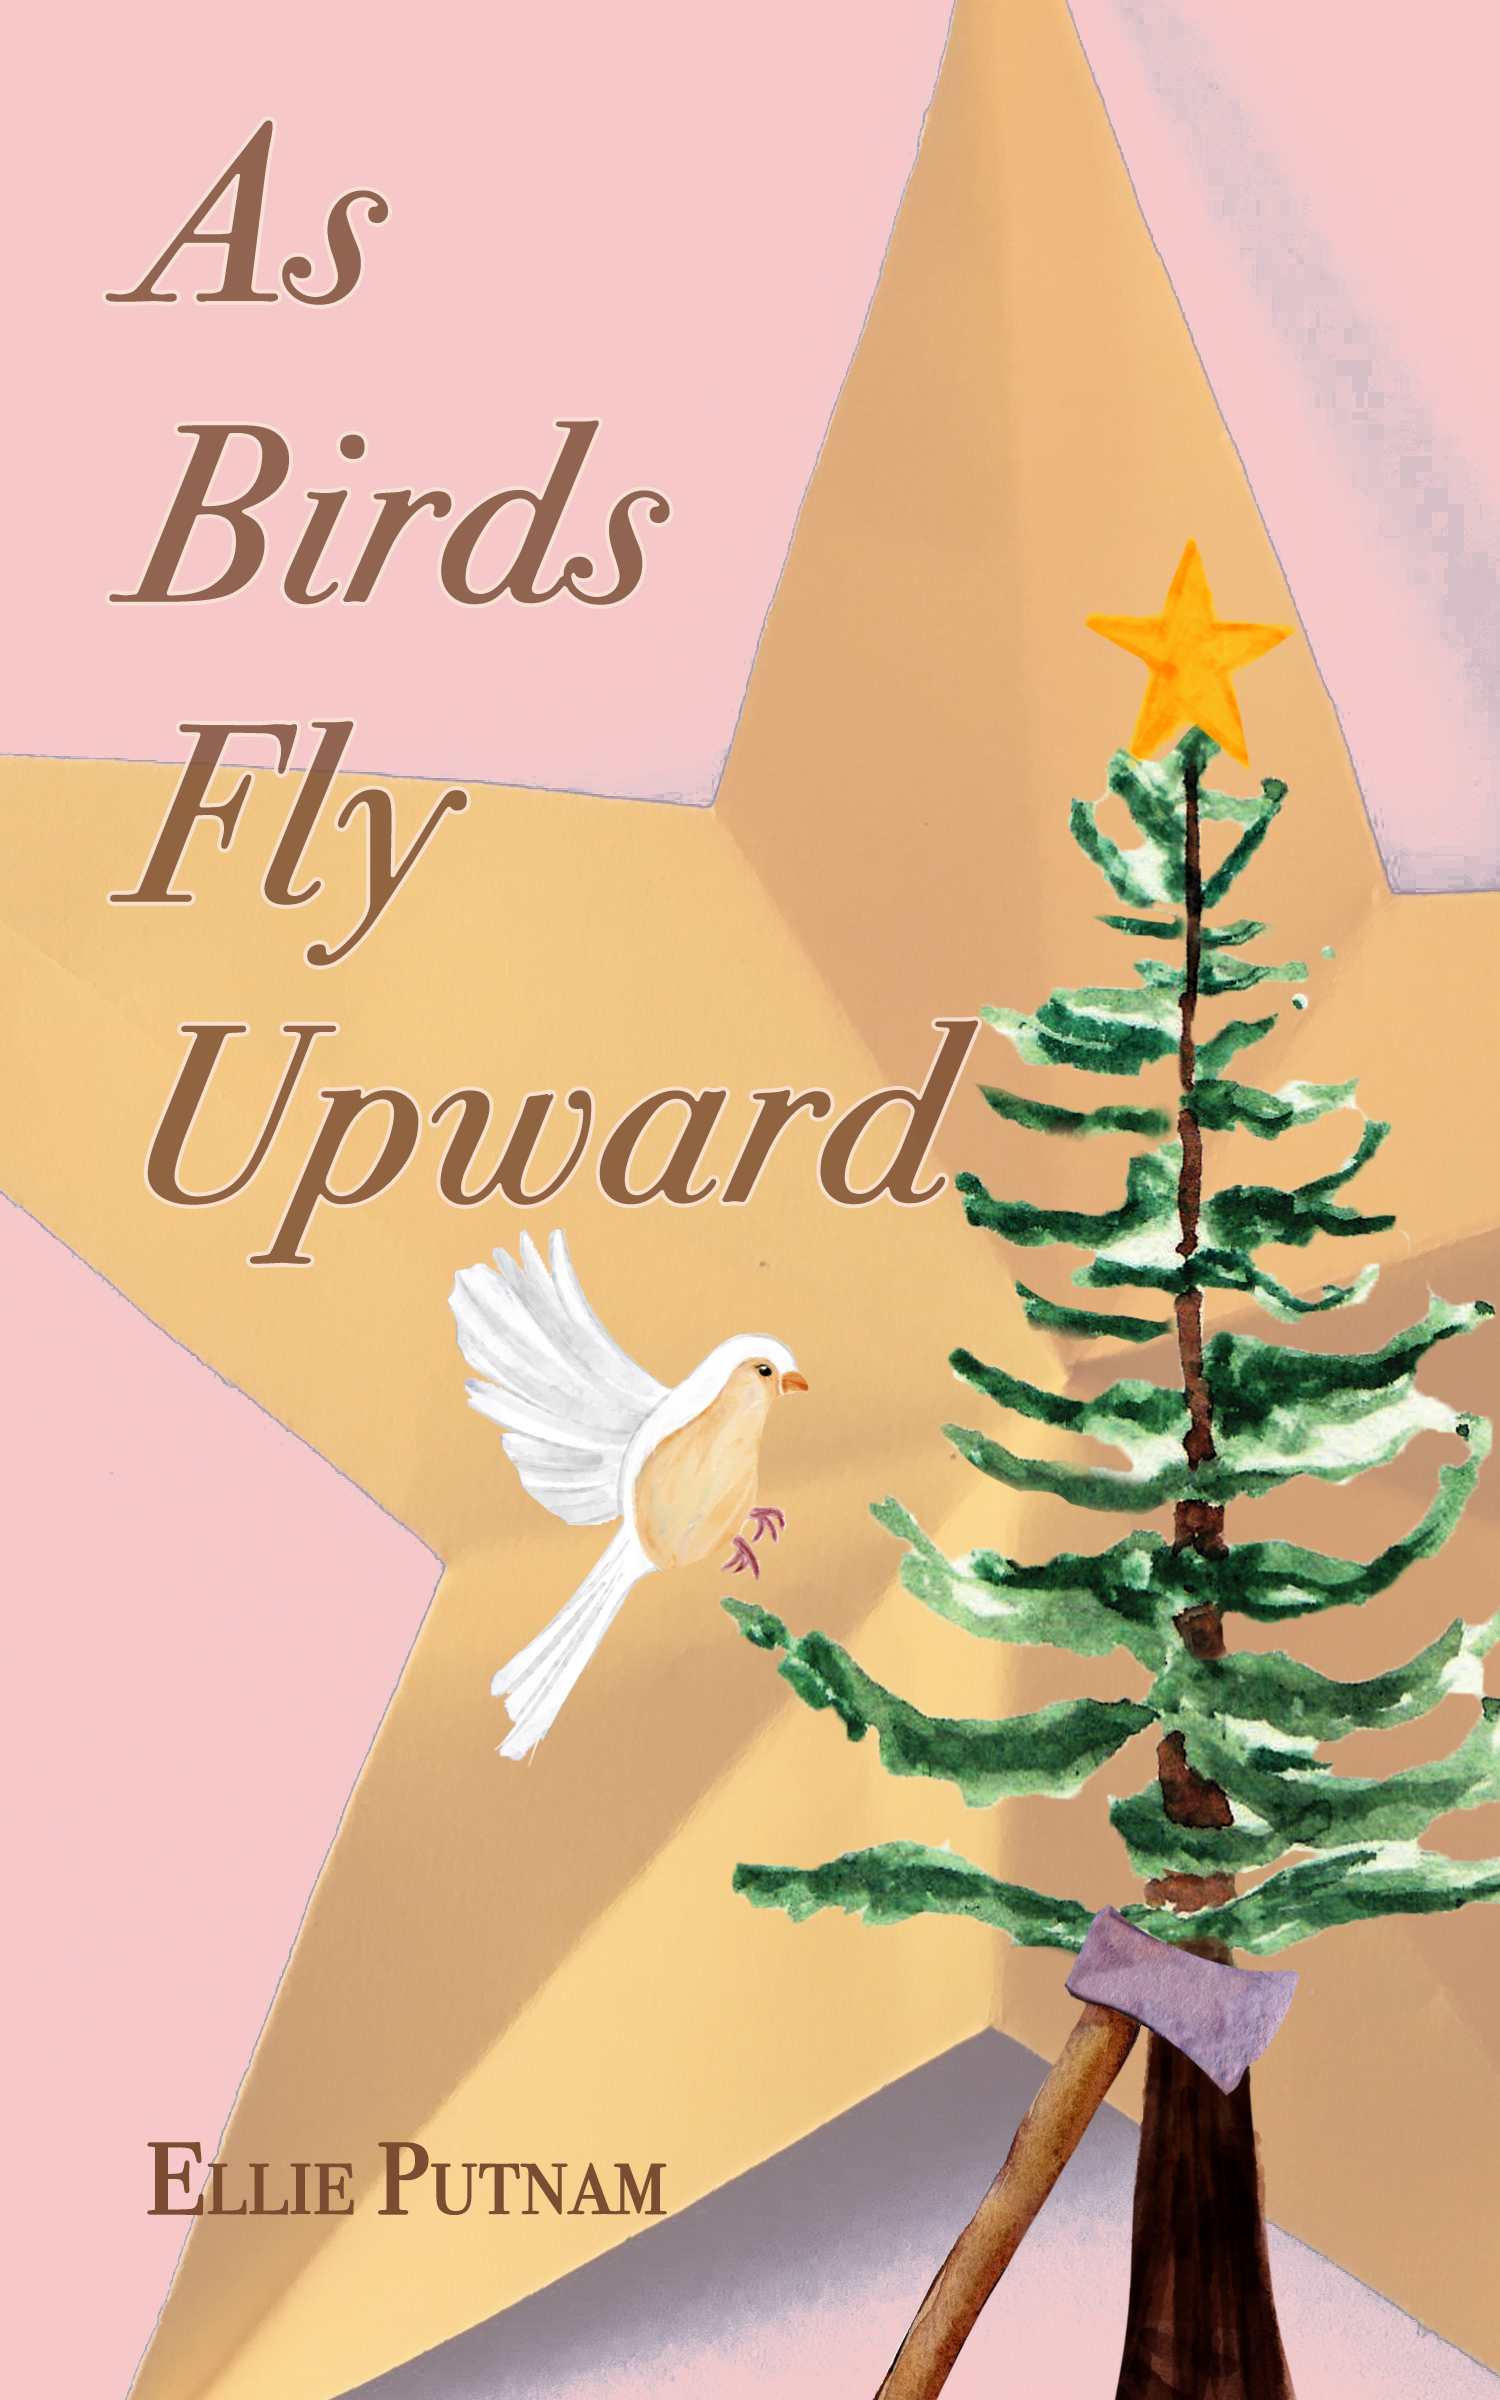 Available Now. - As Birds Fly Upward is Ellie Putnam's debut novel.